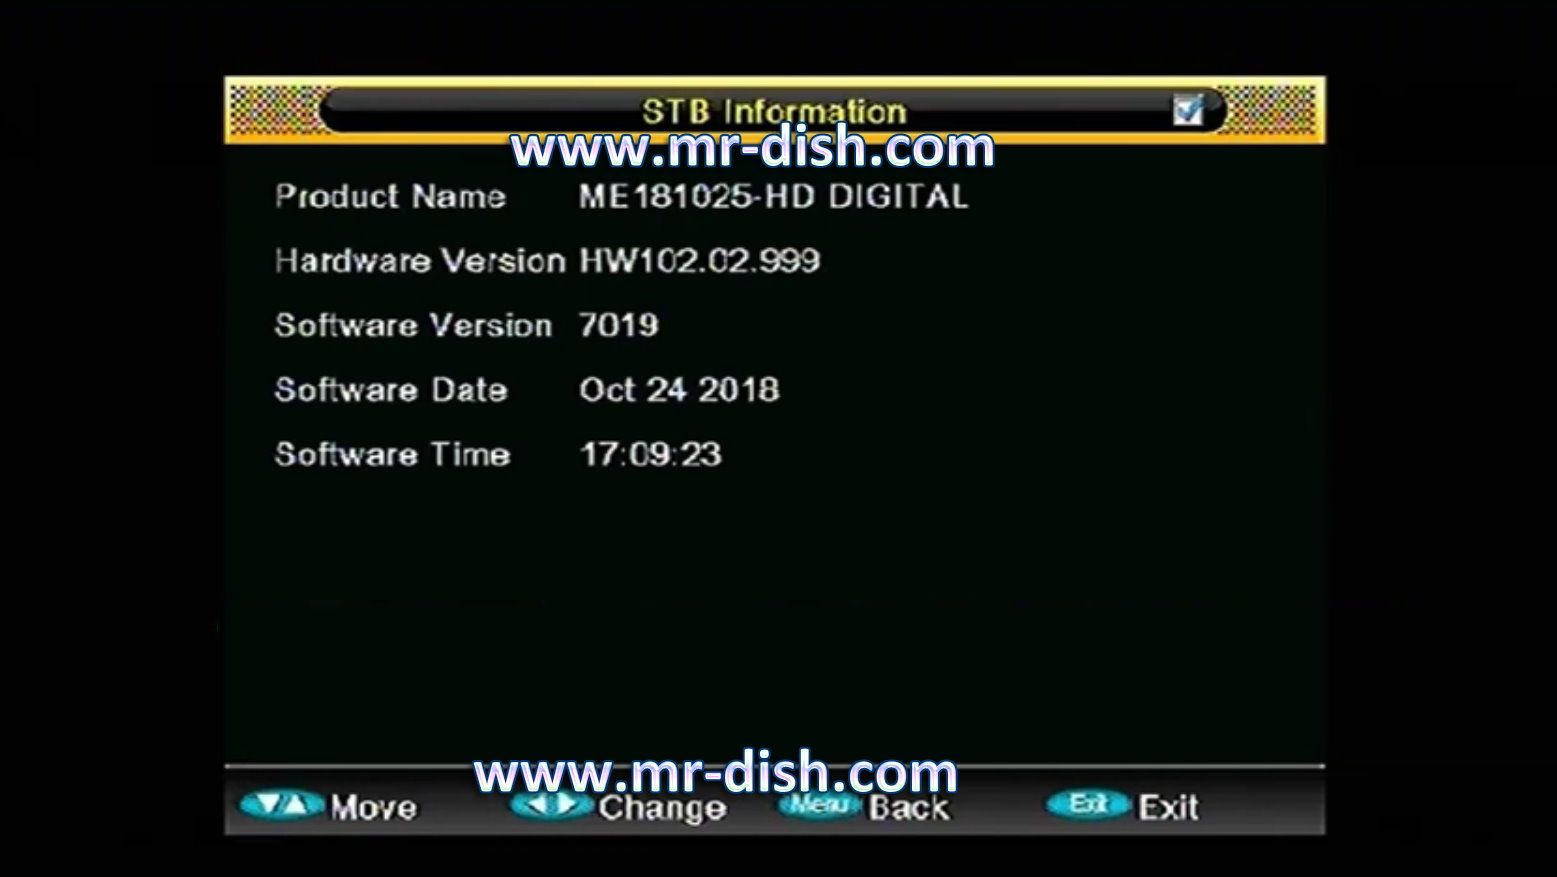 ALI 3510C HW102.02.999 RECEIVER POWERVU SOFTWARE